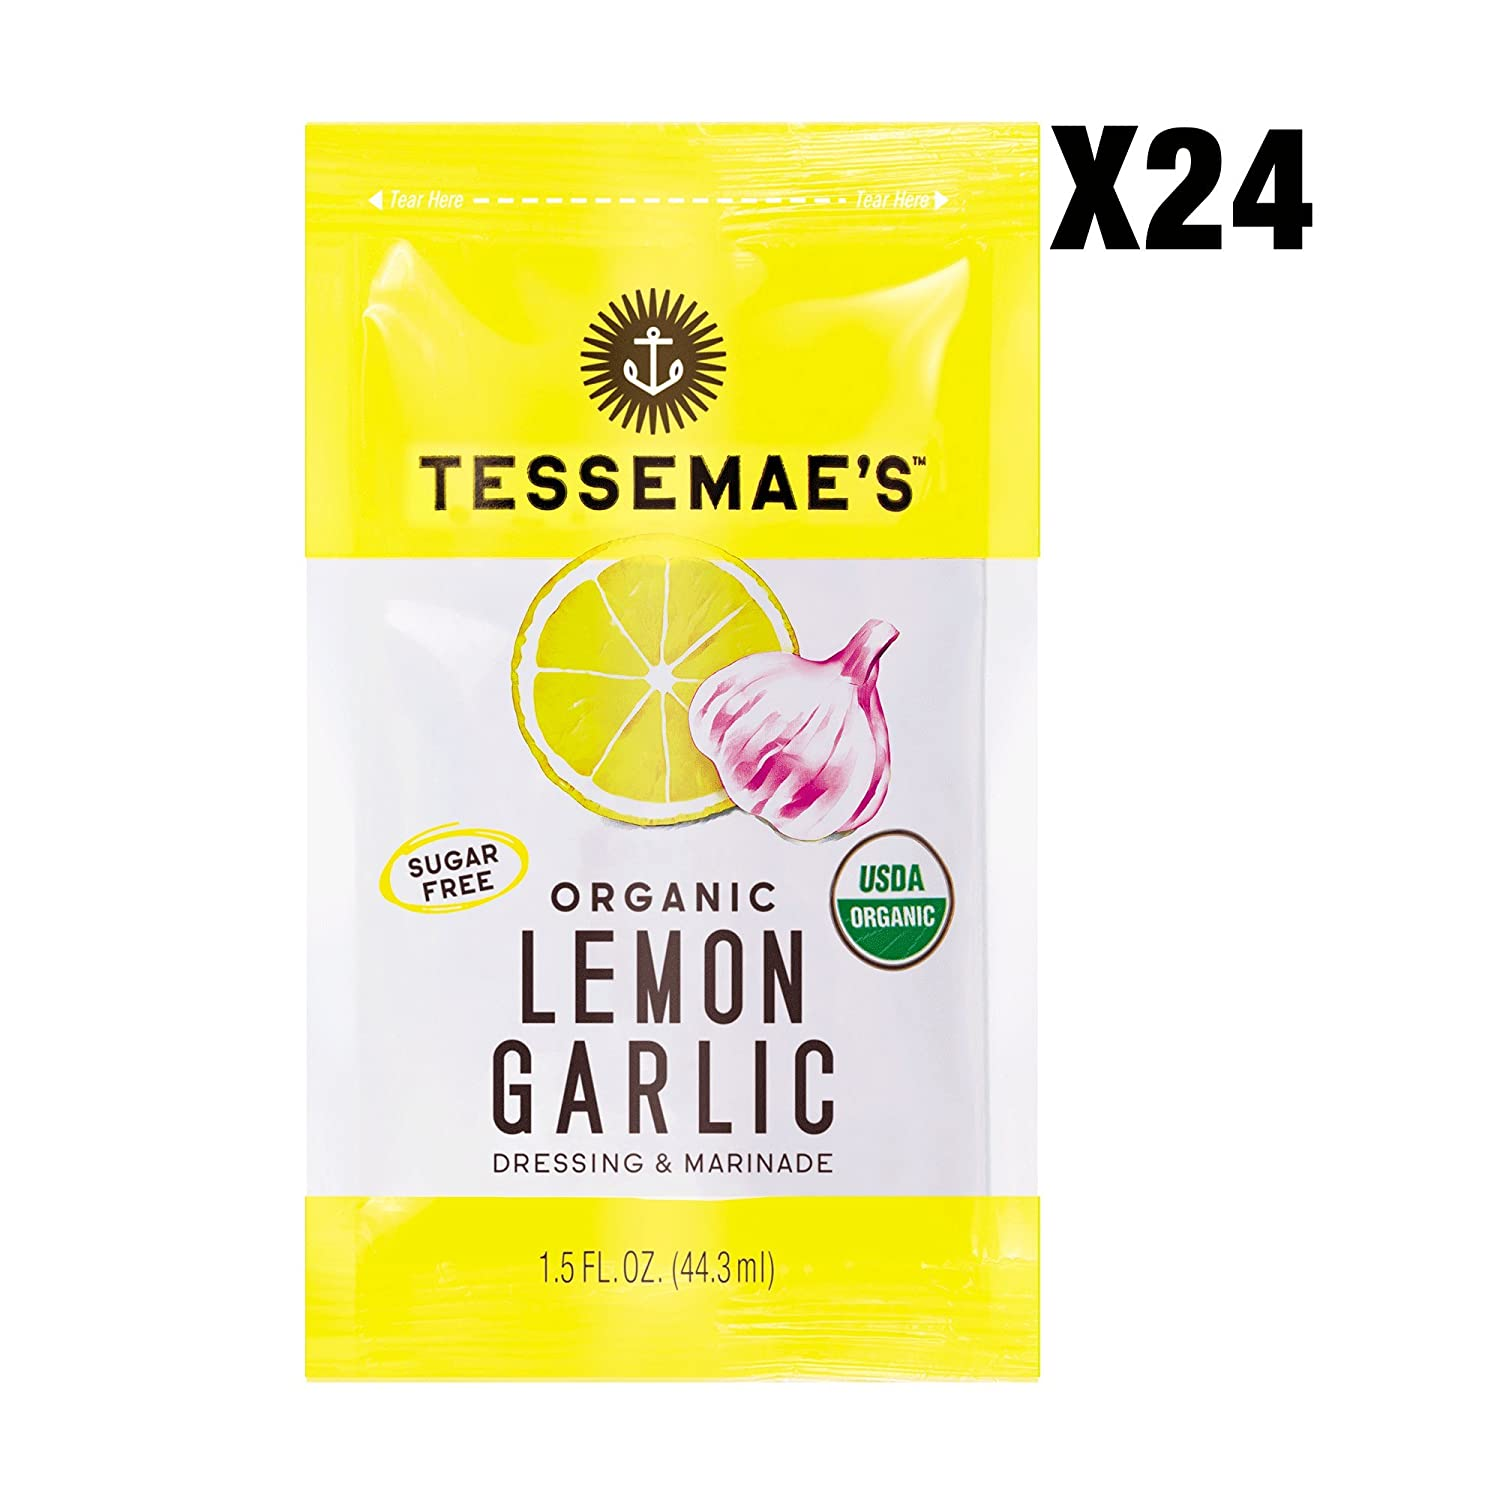 Tessemae's Lemon Garlic Dressing - 1.5oz Dressing Pouches - Whole30 Approved